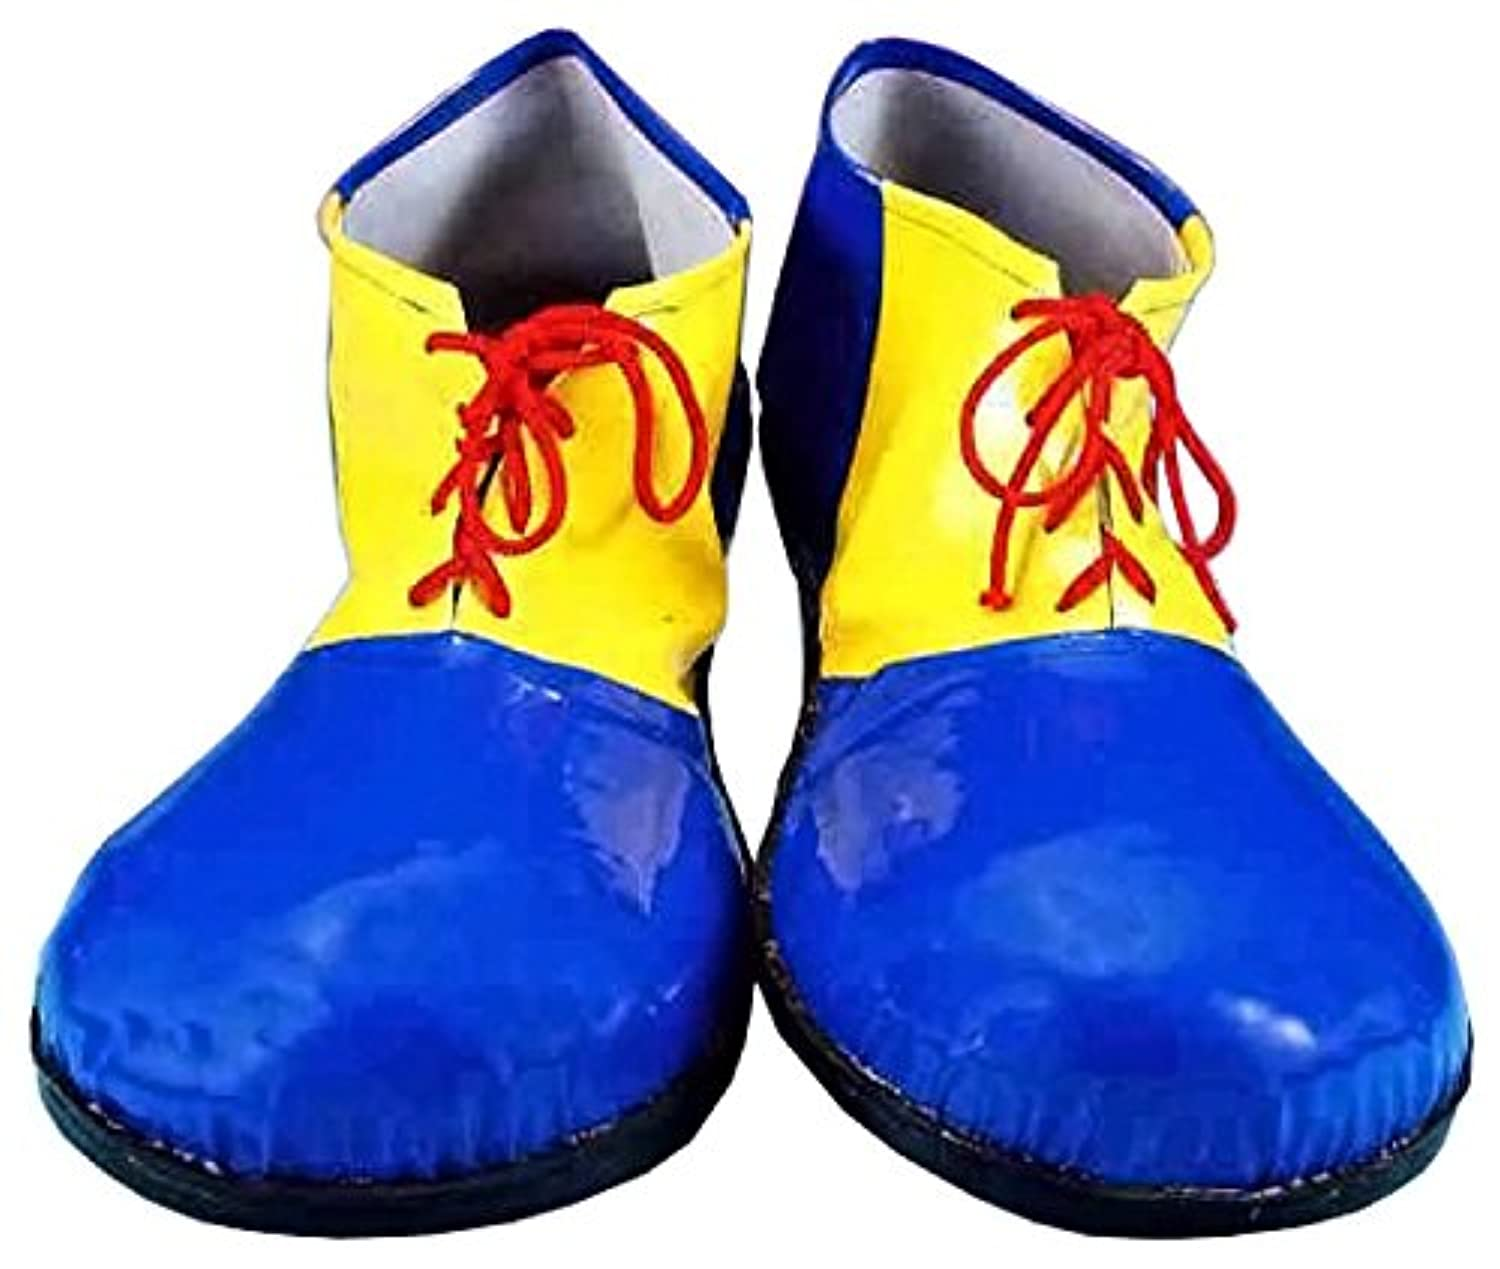 [フォーラム ノベルティ]Forum Novelties Children's Sized Clown Shoes, Blue and Yellow, Small 59682 [並行輸入品]